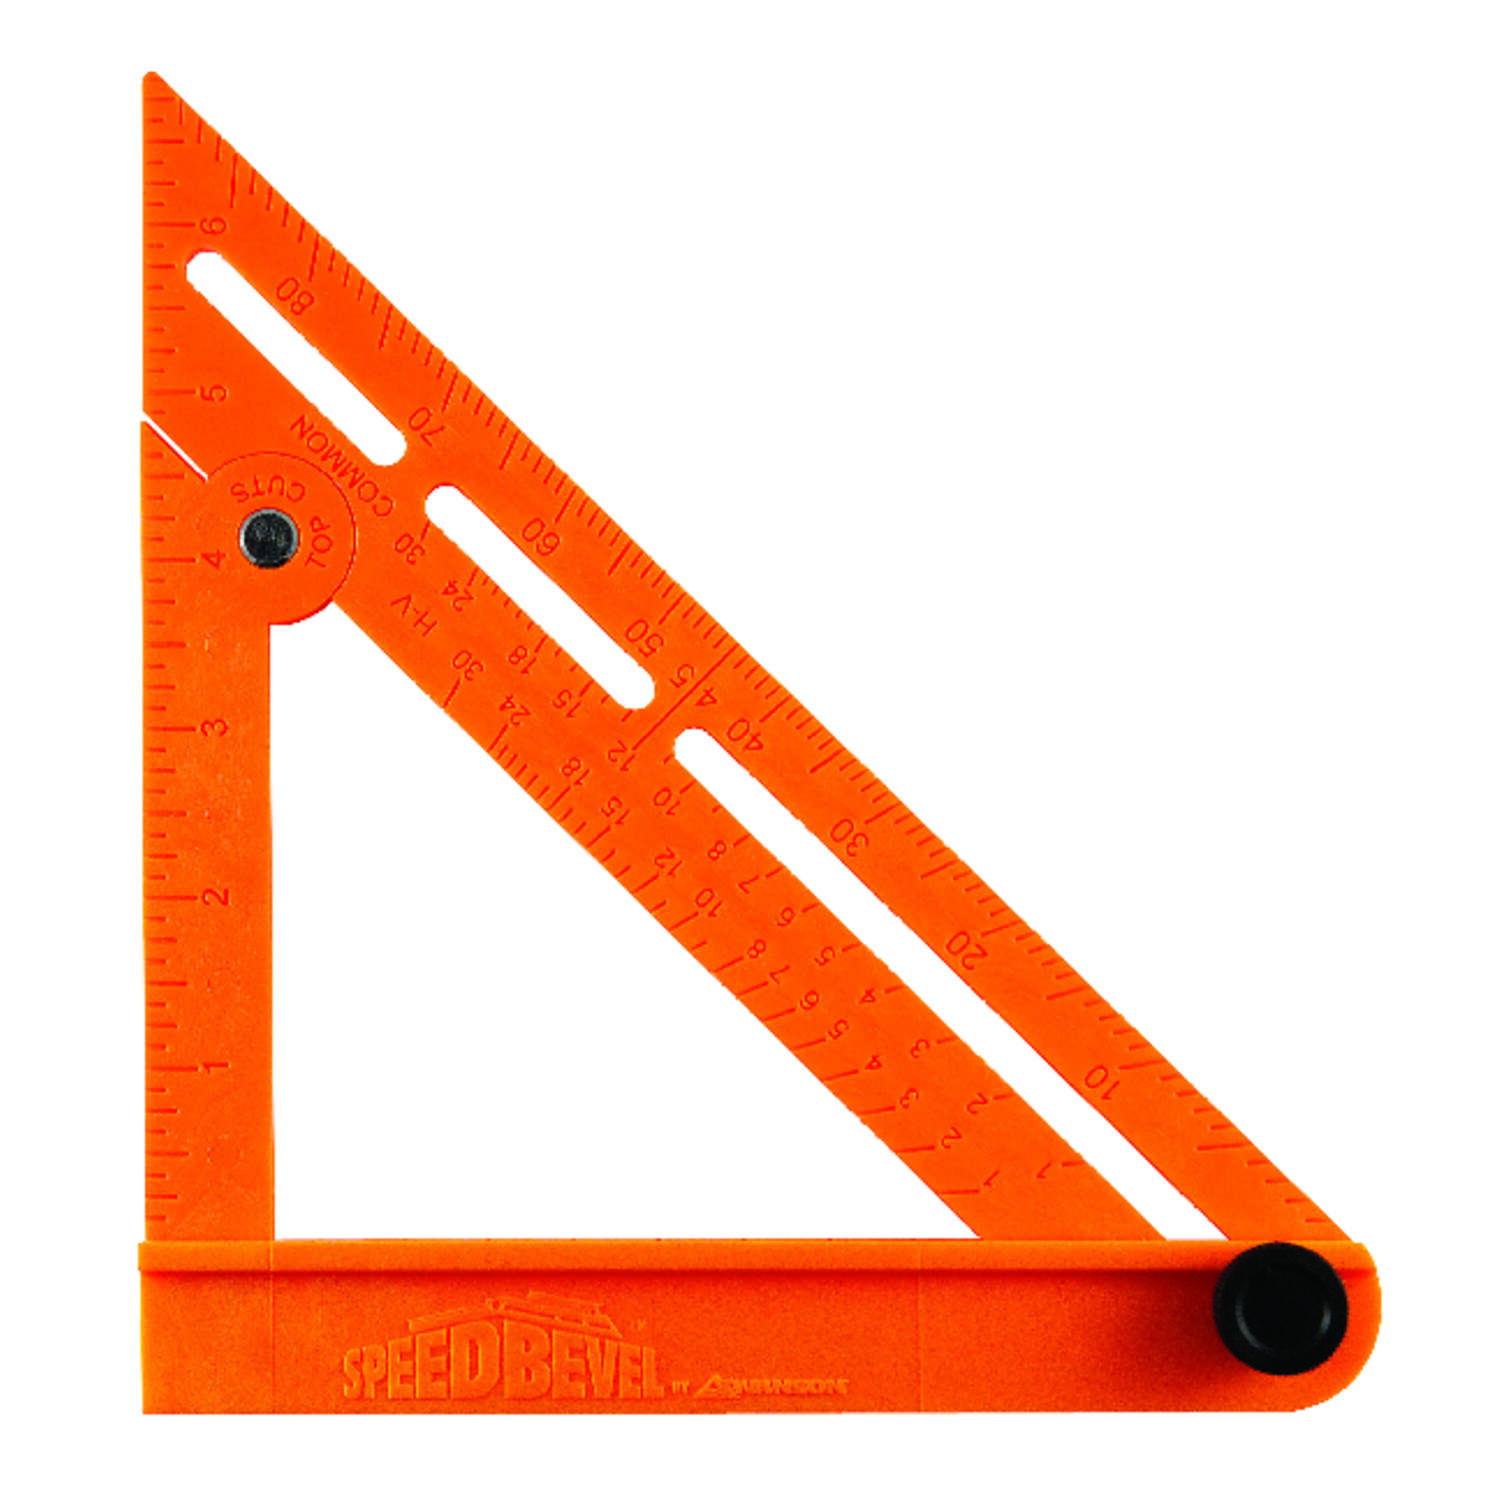 Swanson  Speed Bevel  7.125 in. L x 1.25 in. H ABS Plastic  Adjustable Speed Square  Orange